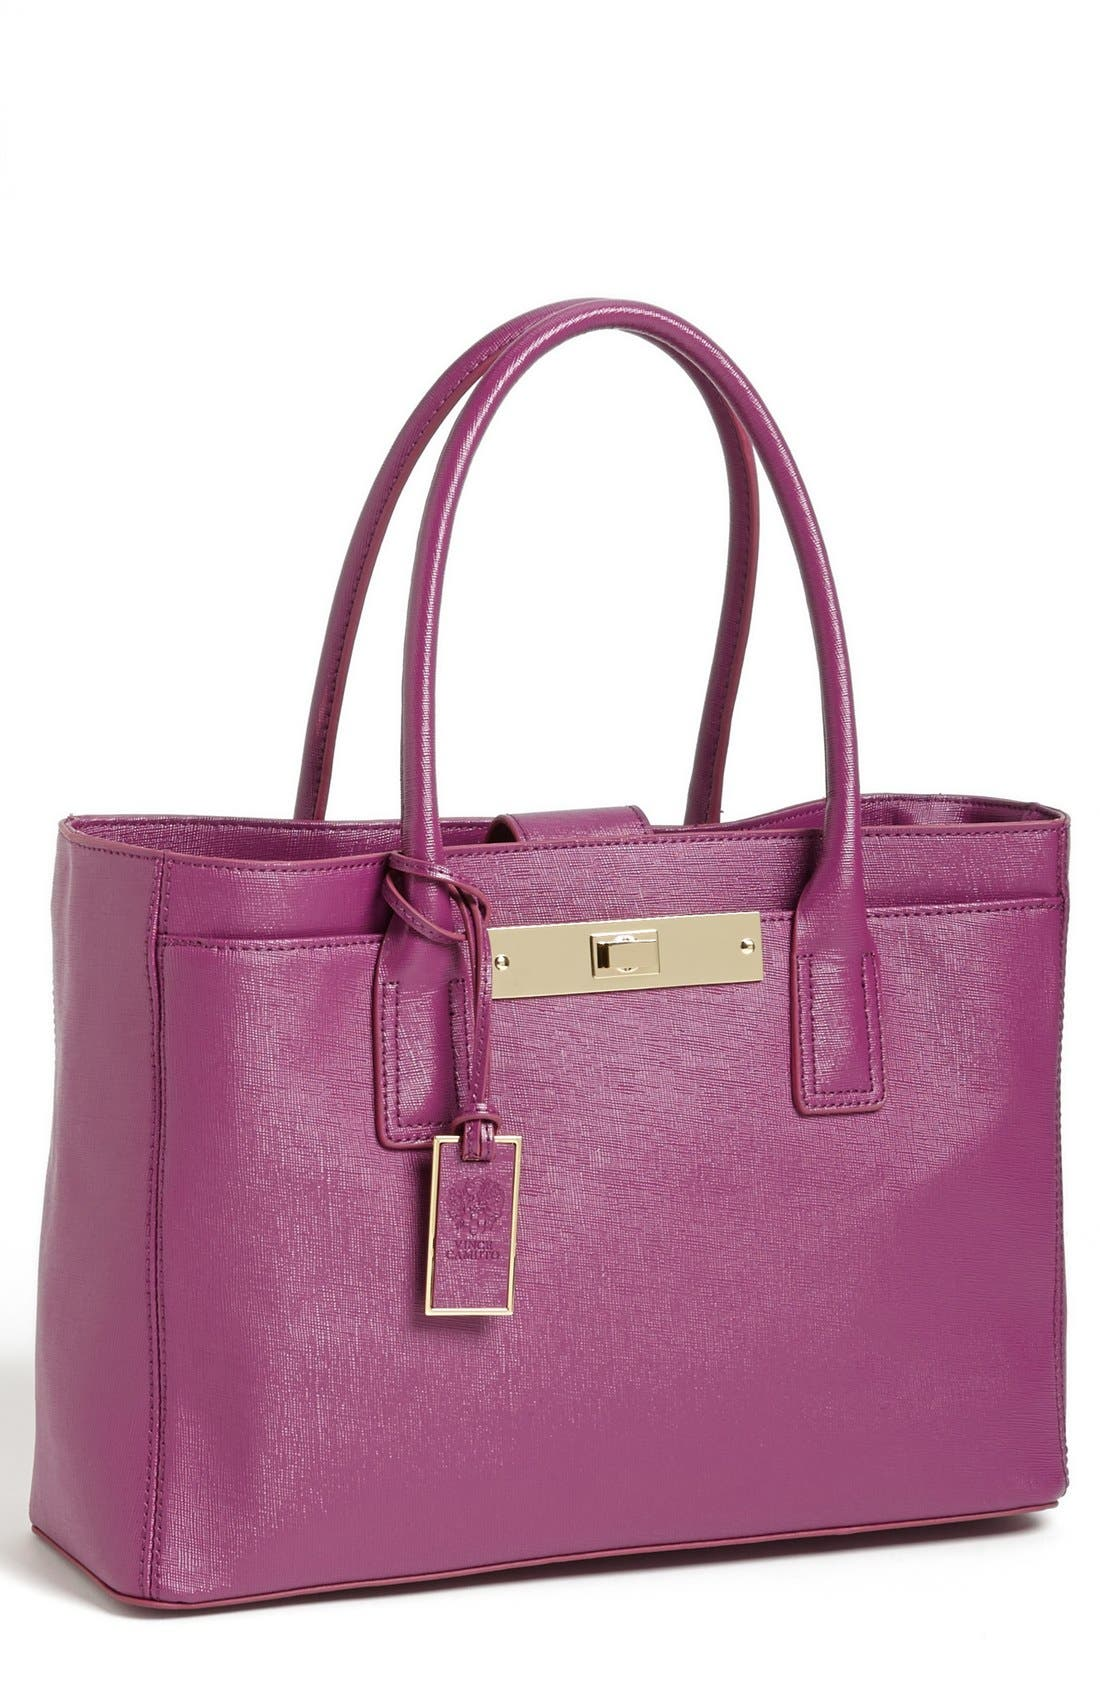 Main Image - Vince Camuto 'Alex' Tote, Large